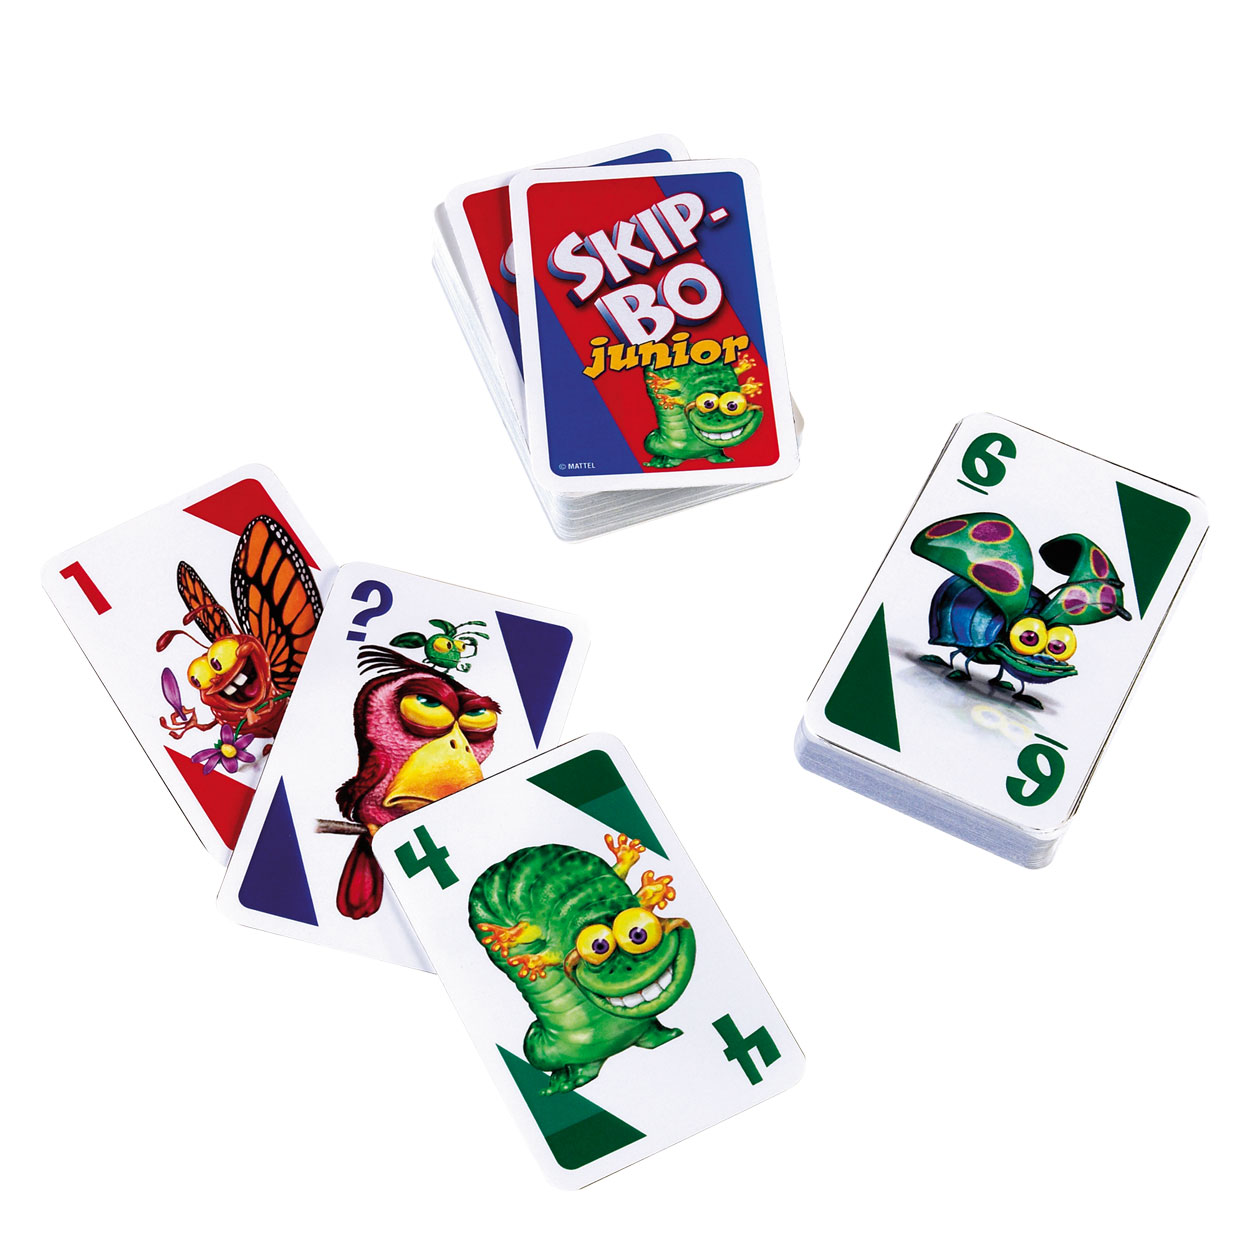 how to start skip-bo junior